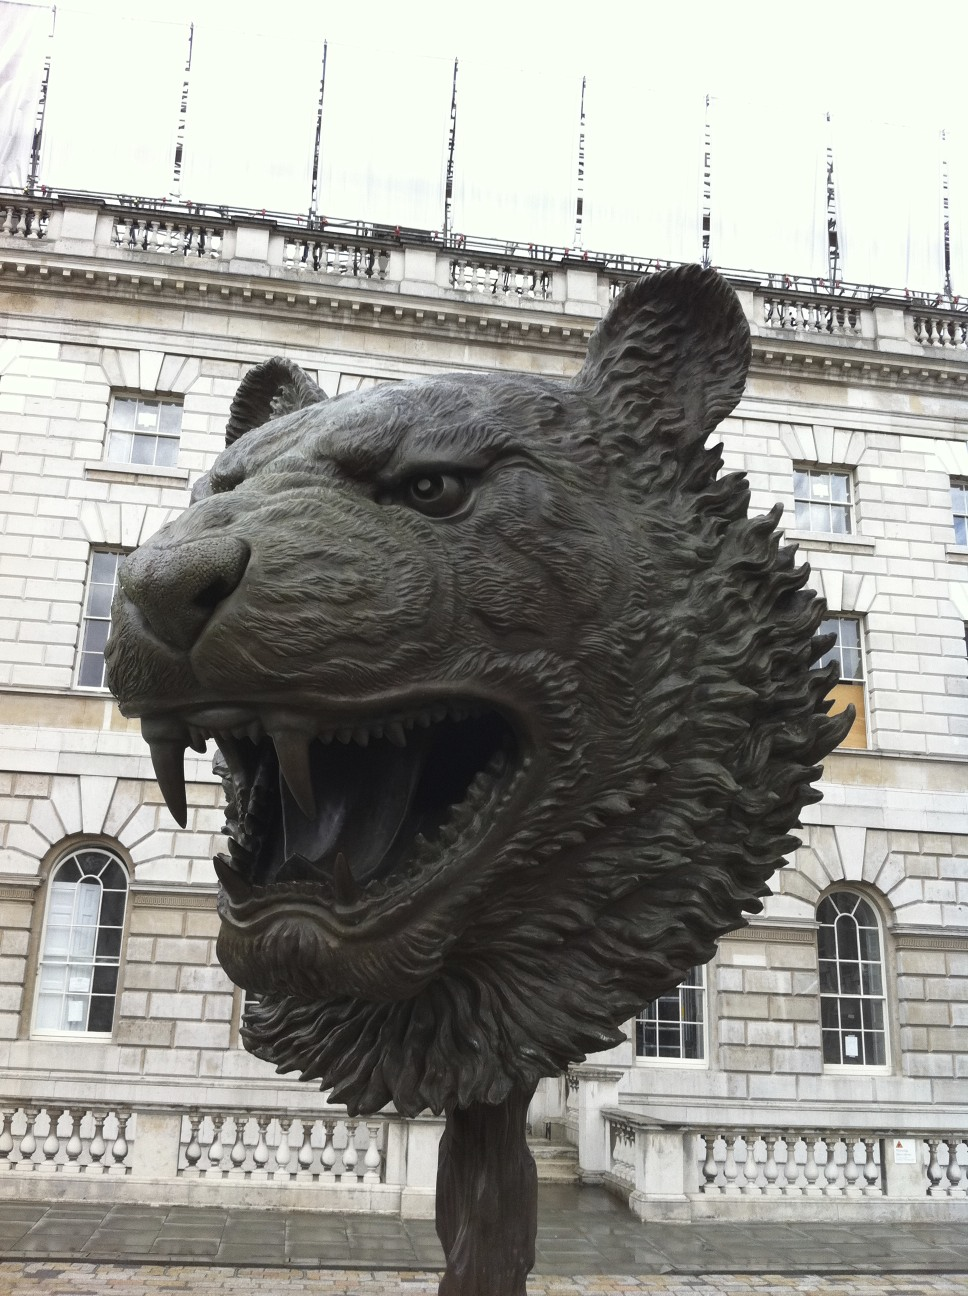 One of the 12 very cool zodiac bronzes by Ai WeiWei at Somerset House.